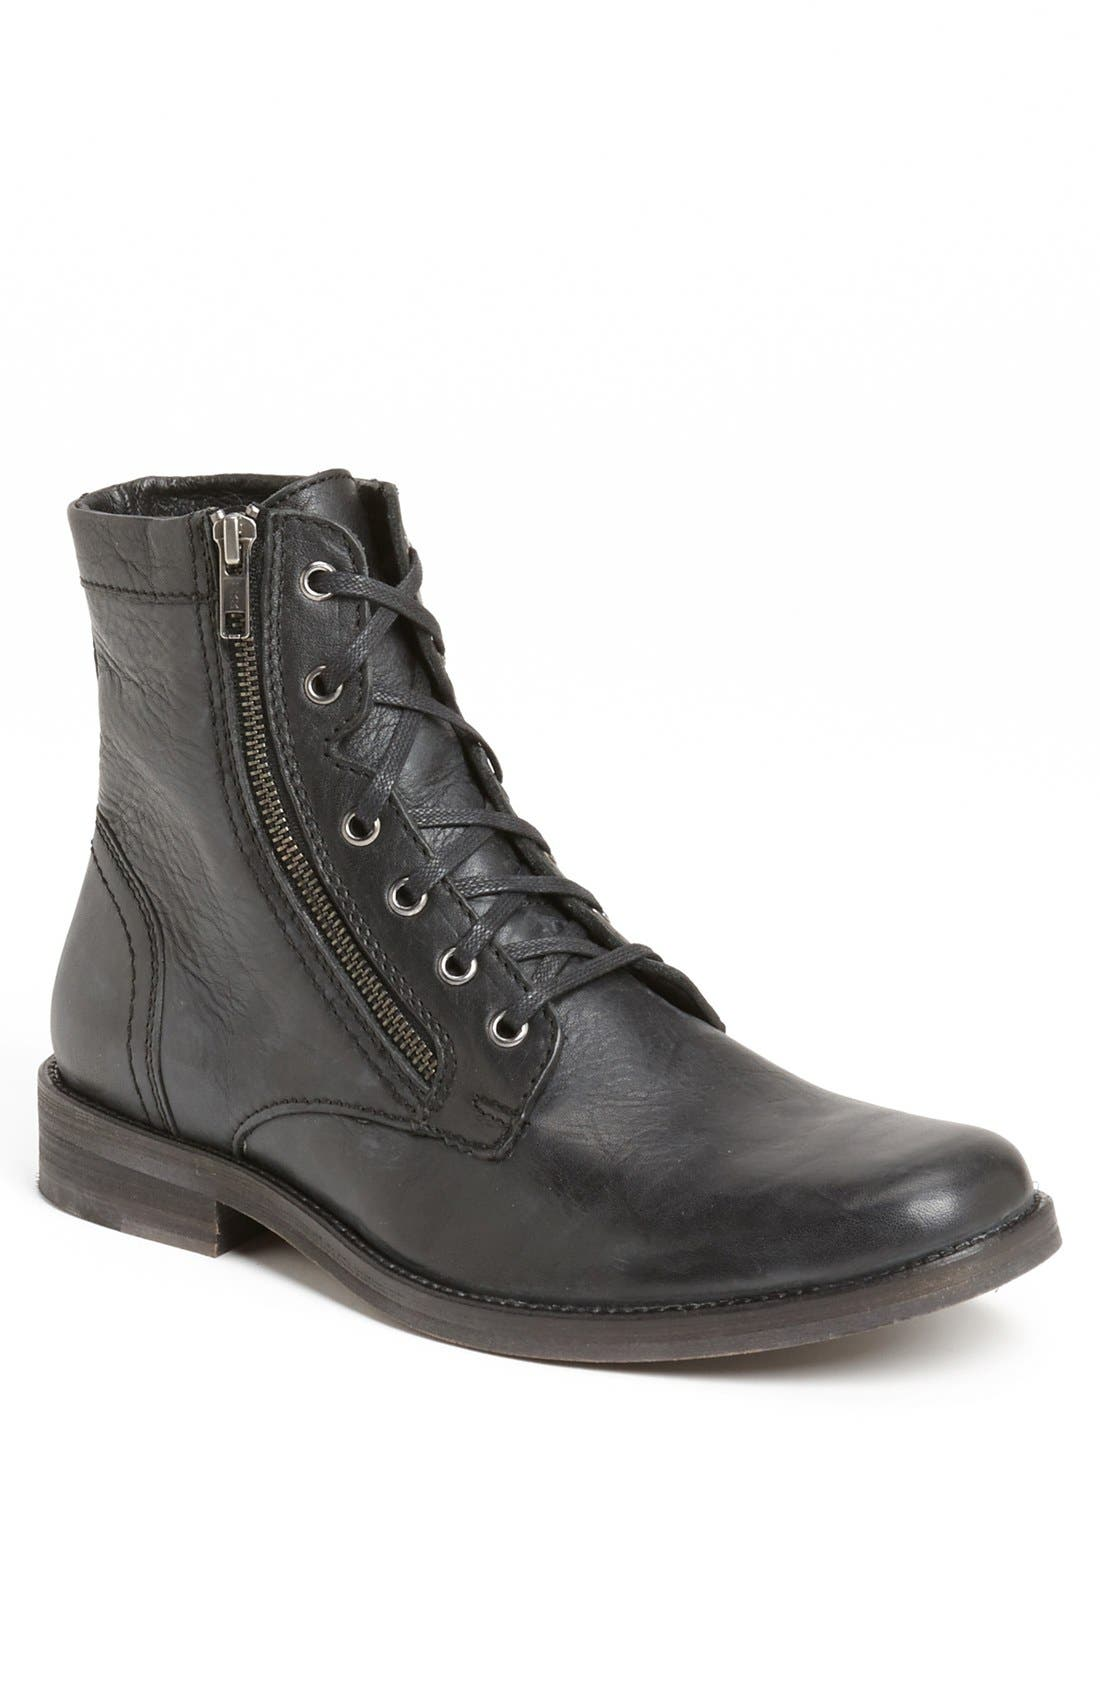 Alternate Image 1 Selected - The Rail 'Merida' Plain Toe Boot